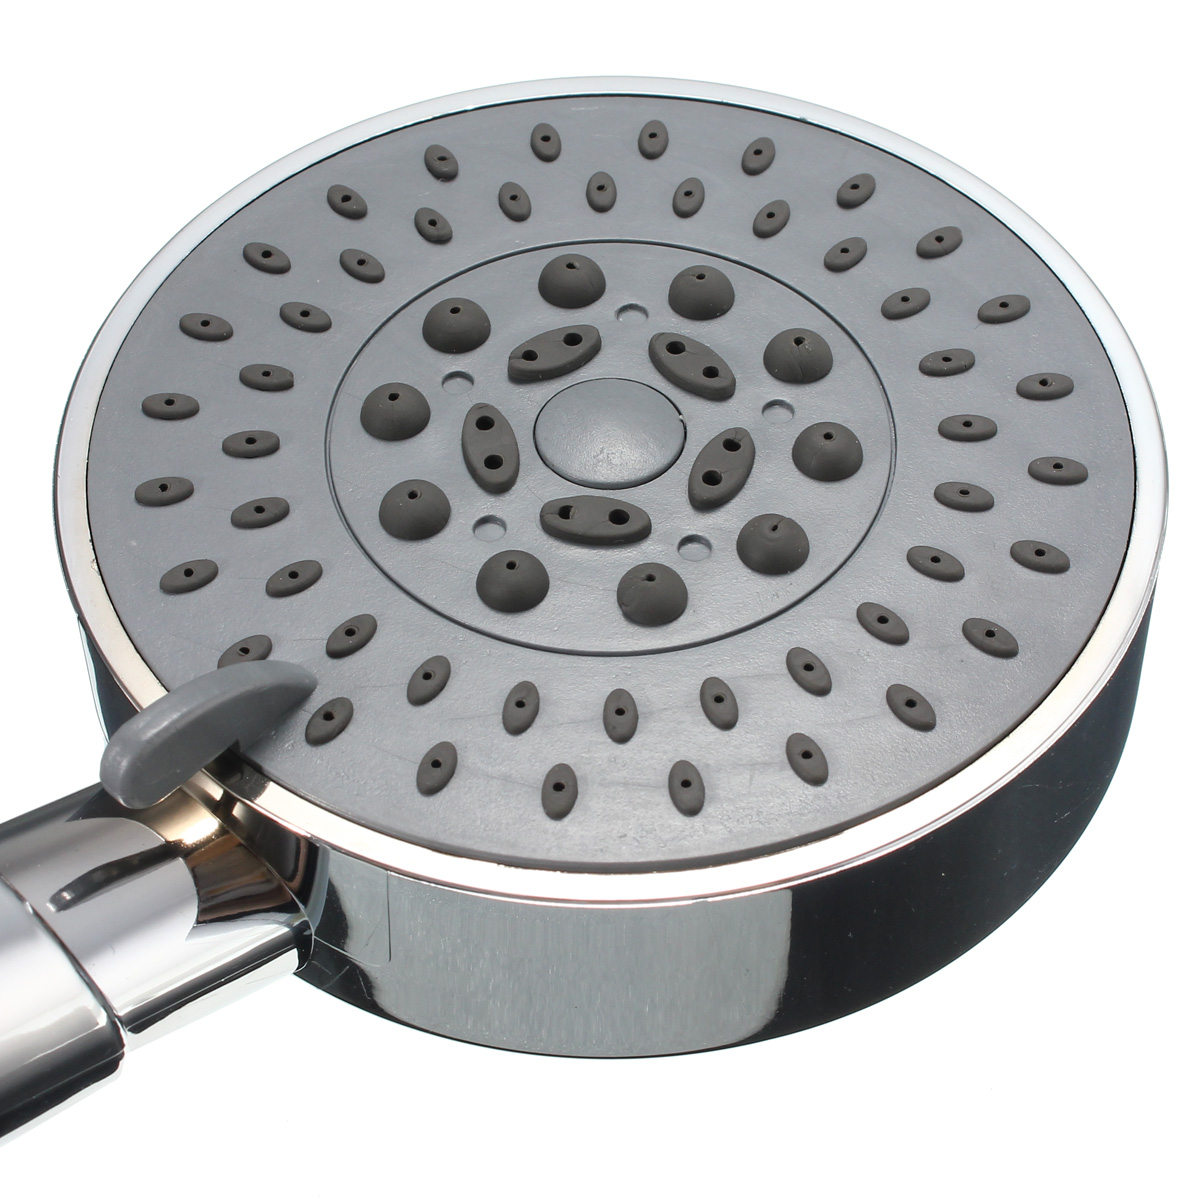 how to clean shower head limescale